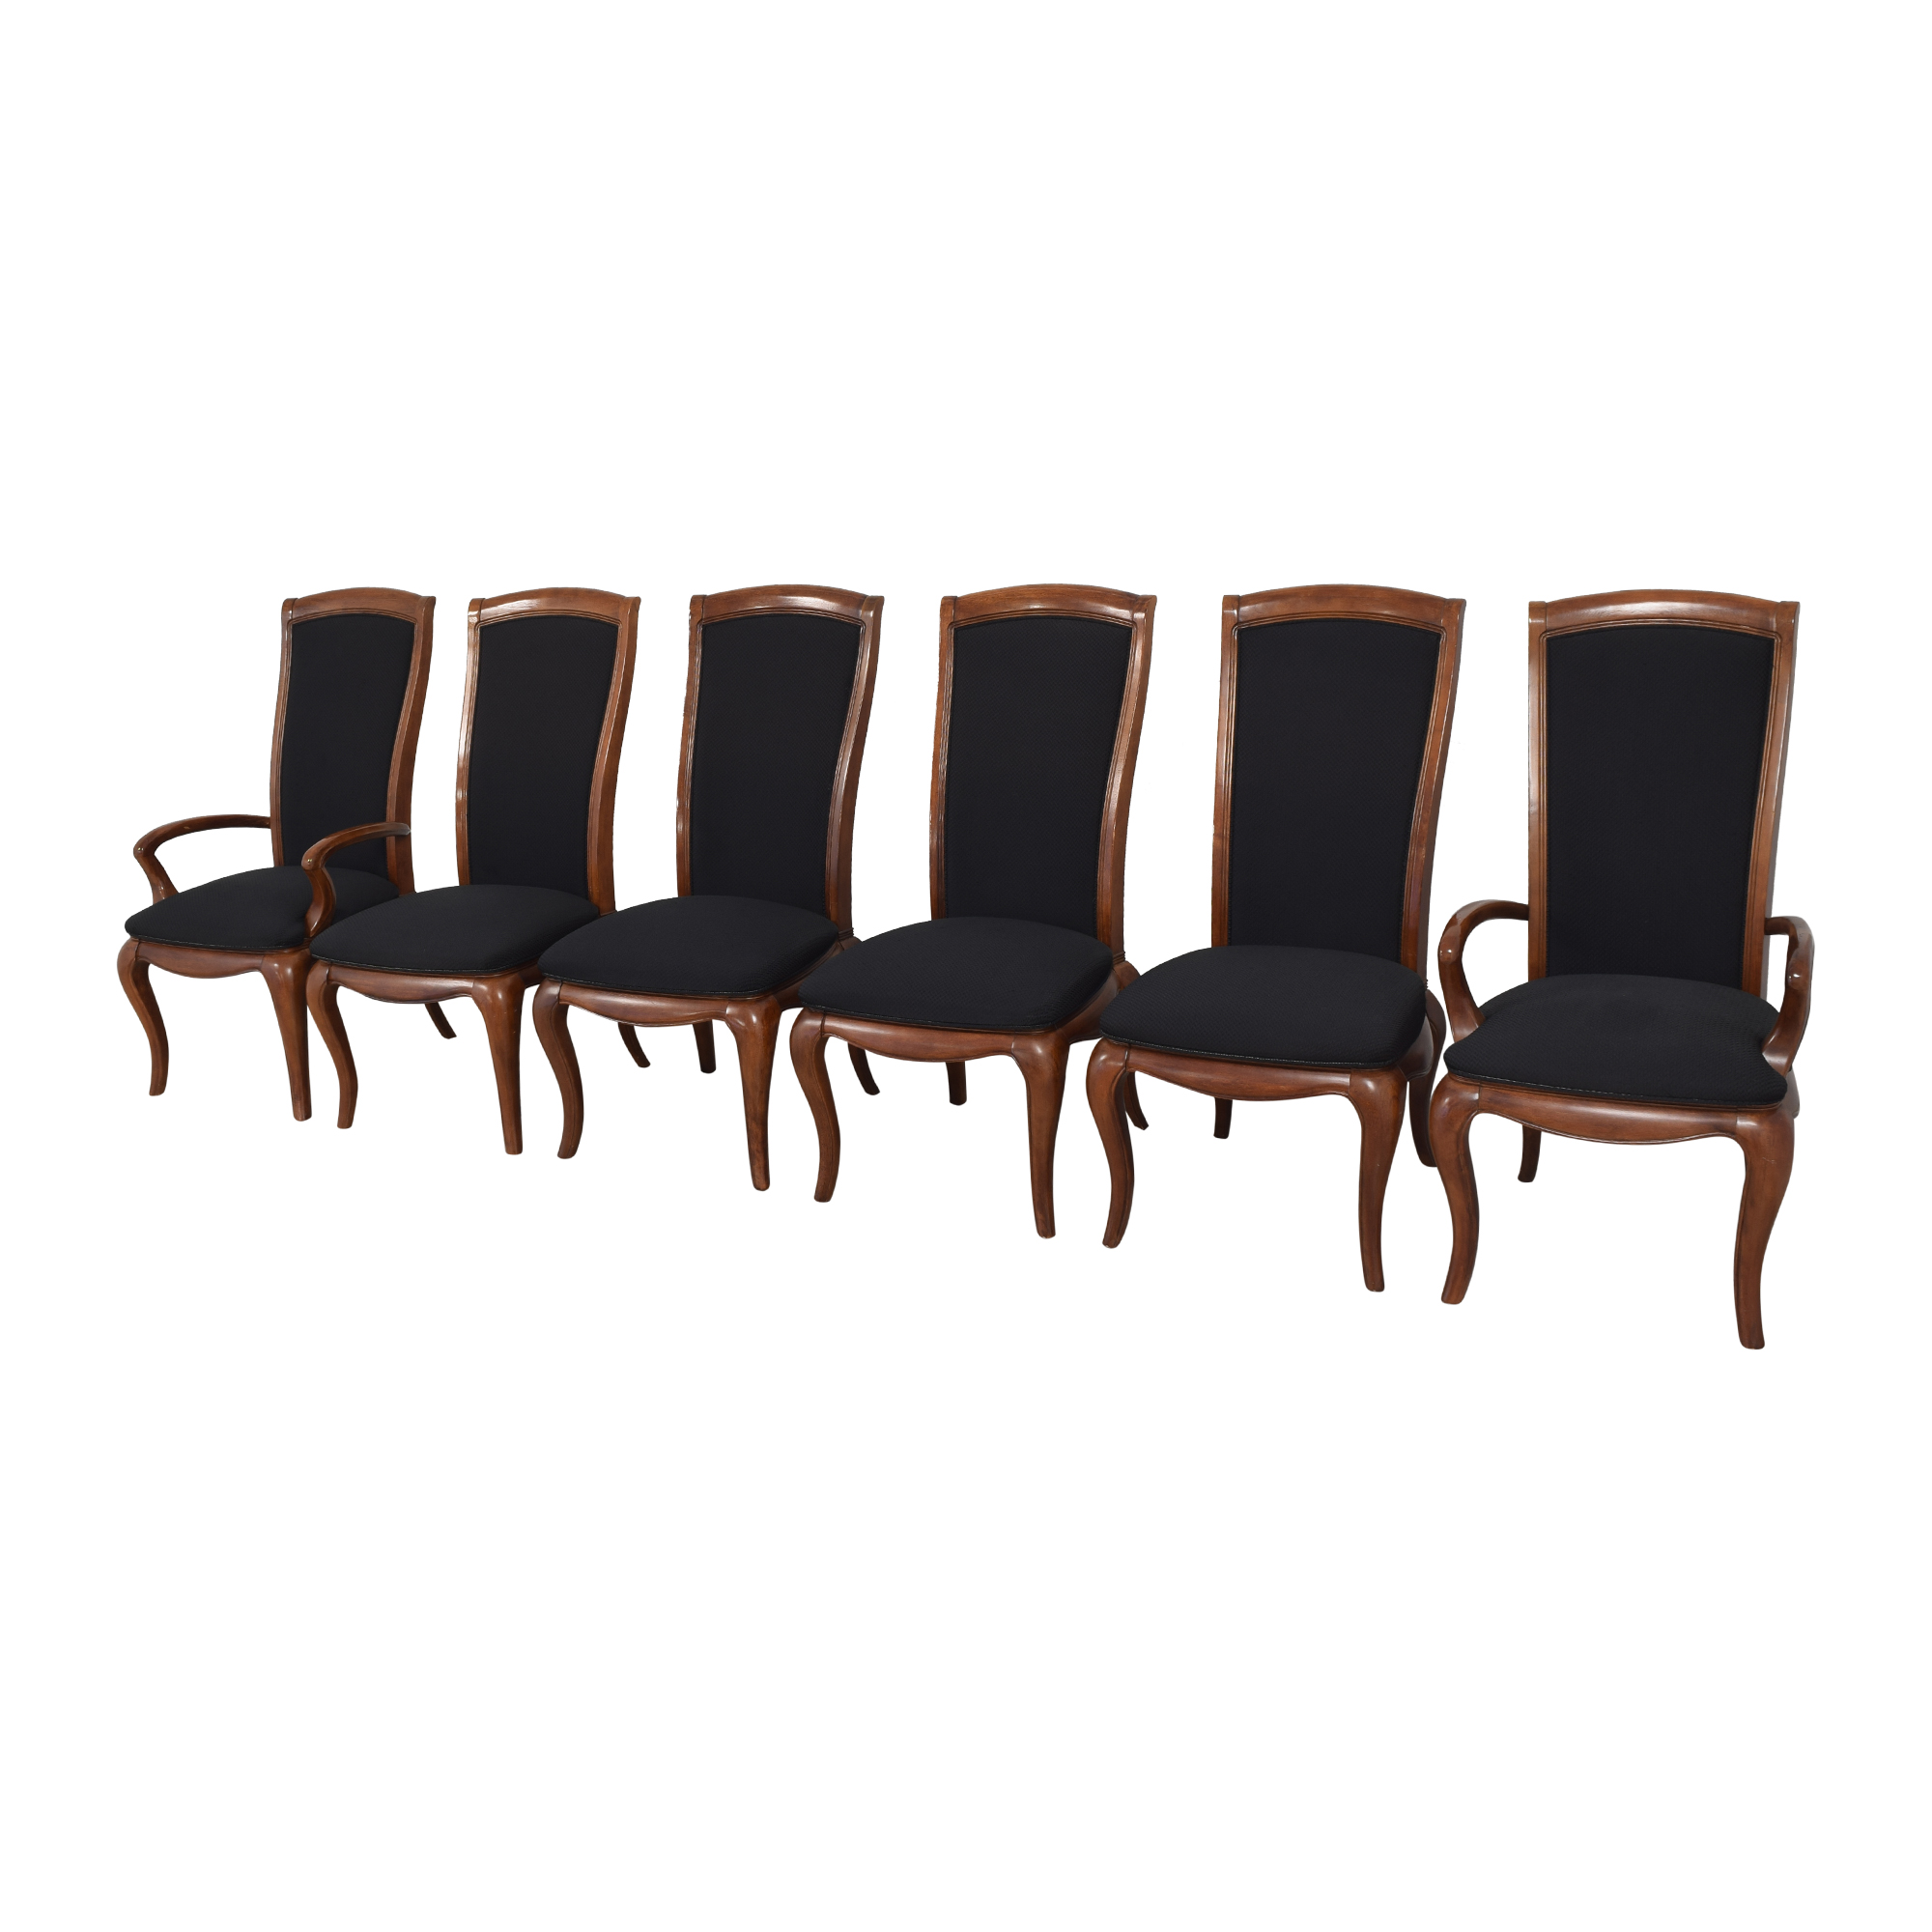 American Drew American Drew High Back Dining Chairs Dining Chairs